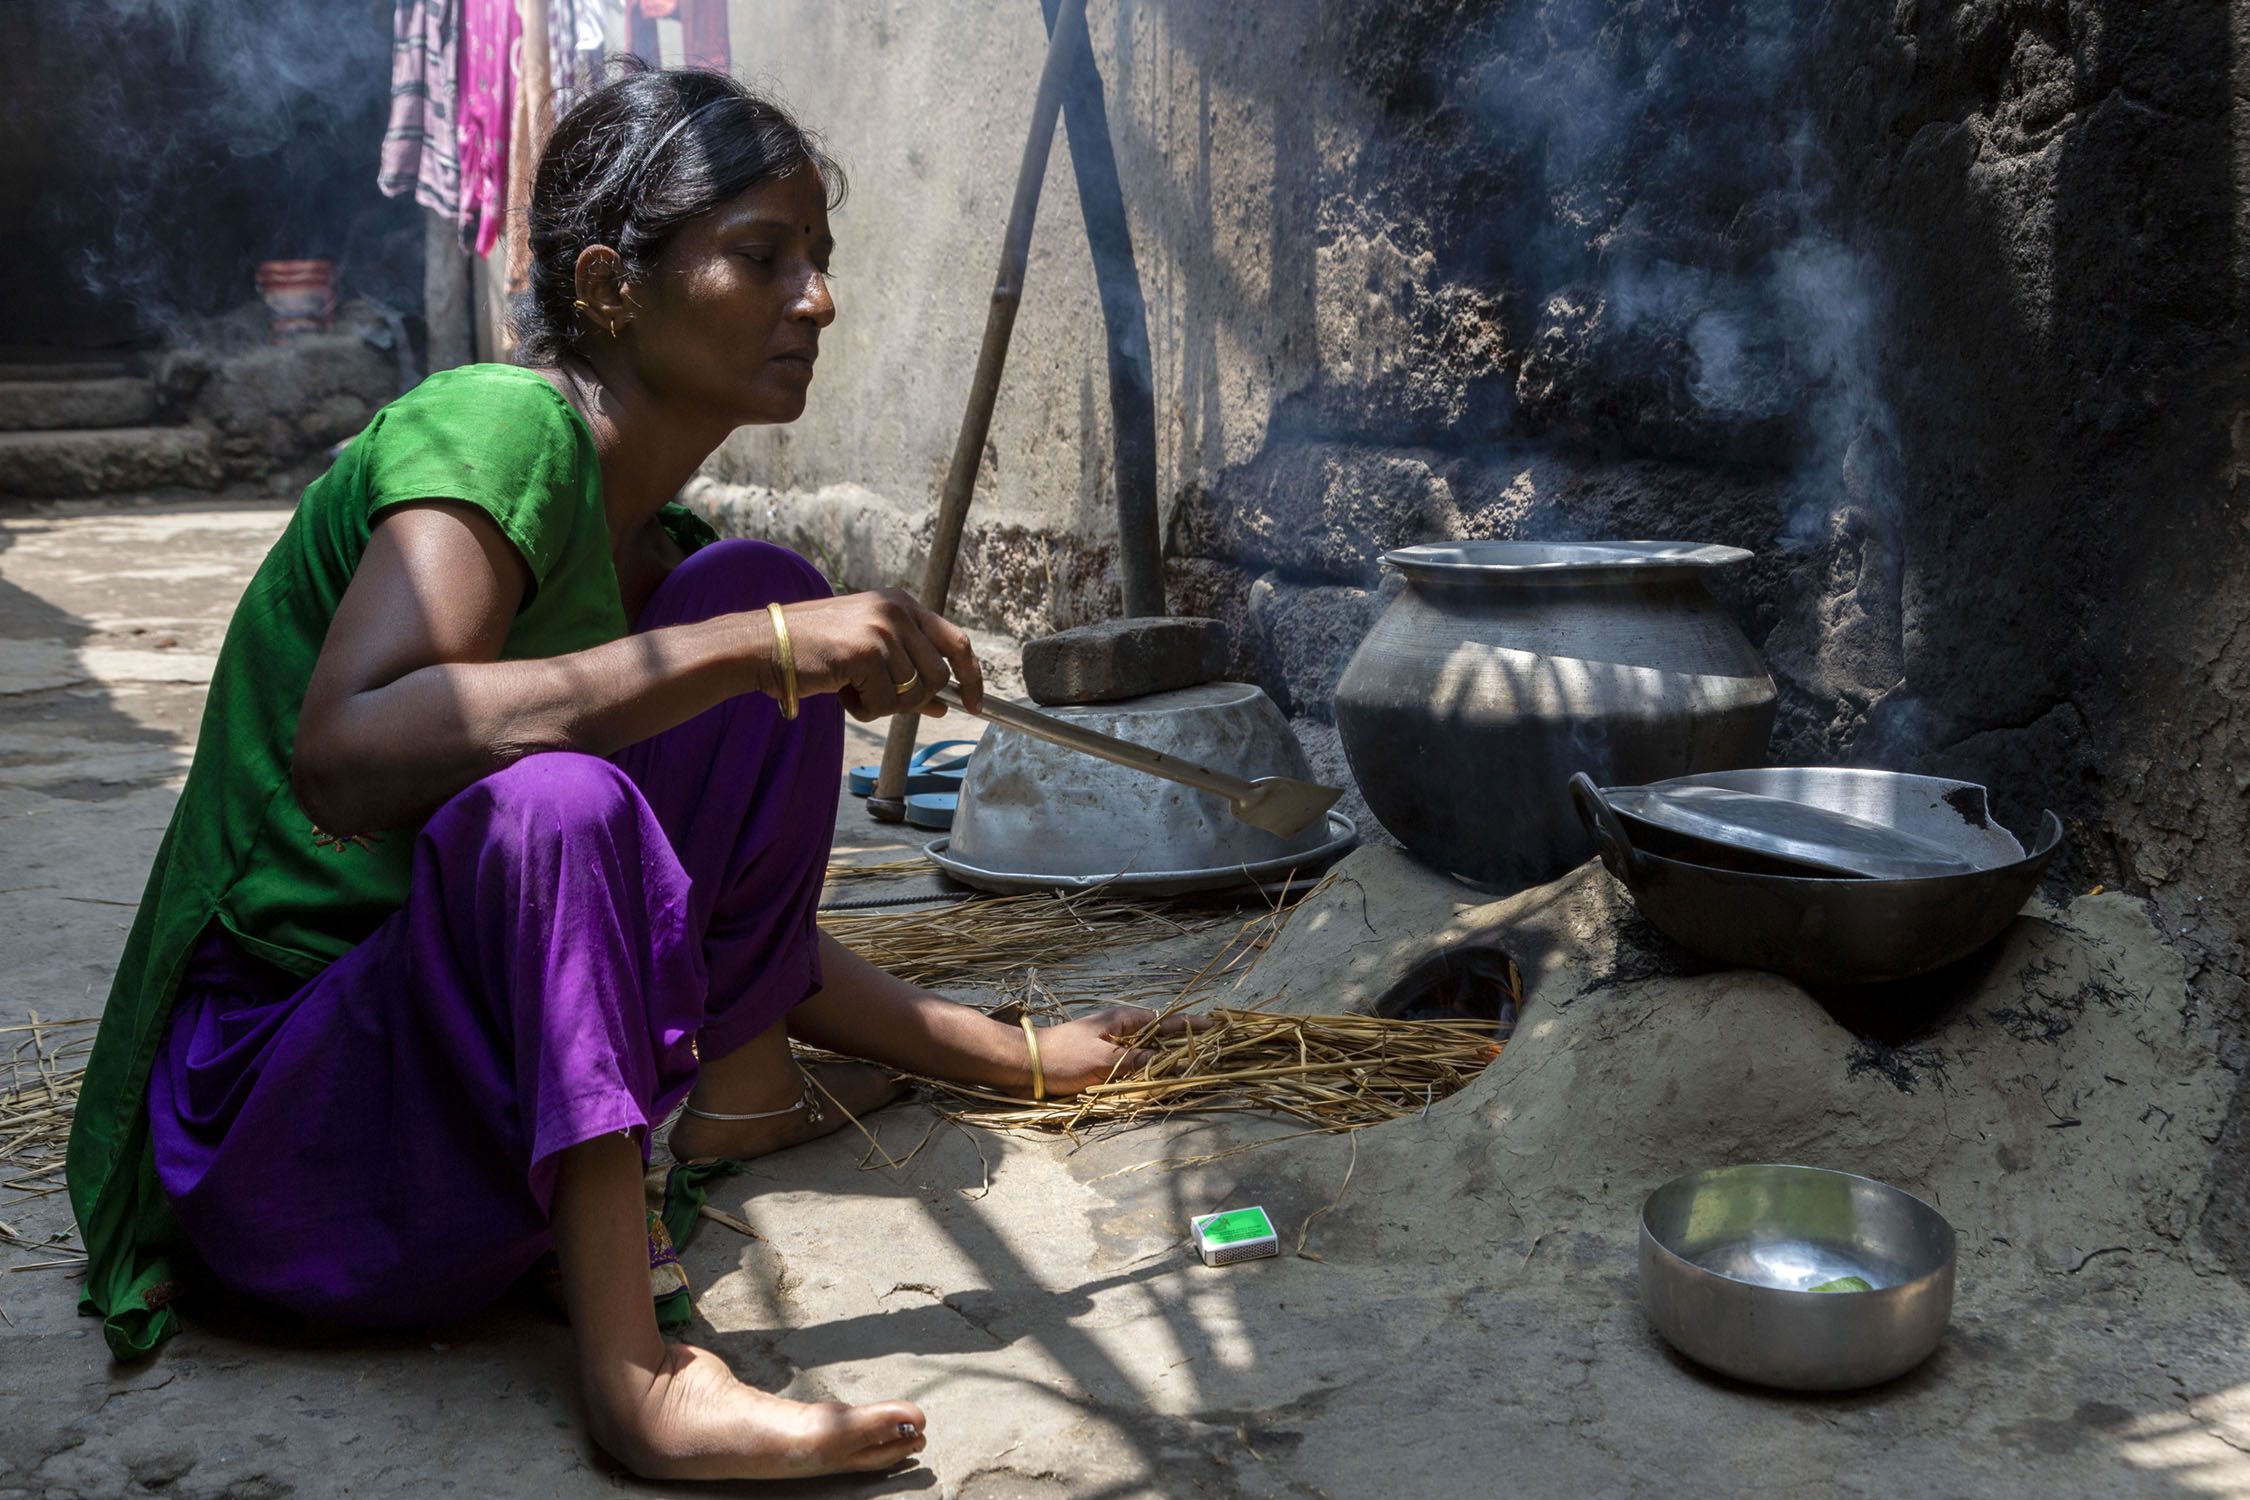 Koushalya in green kameez and purple salwar is squatting outdoors in front of a chulha (earthen stove). She is putting straw into the open mouth of the chulha with her left hand and her right hand holds a steel spatula. An aluminium pot and a kadhai (wok) sit on top of the stove.